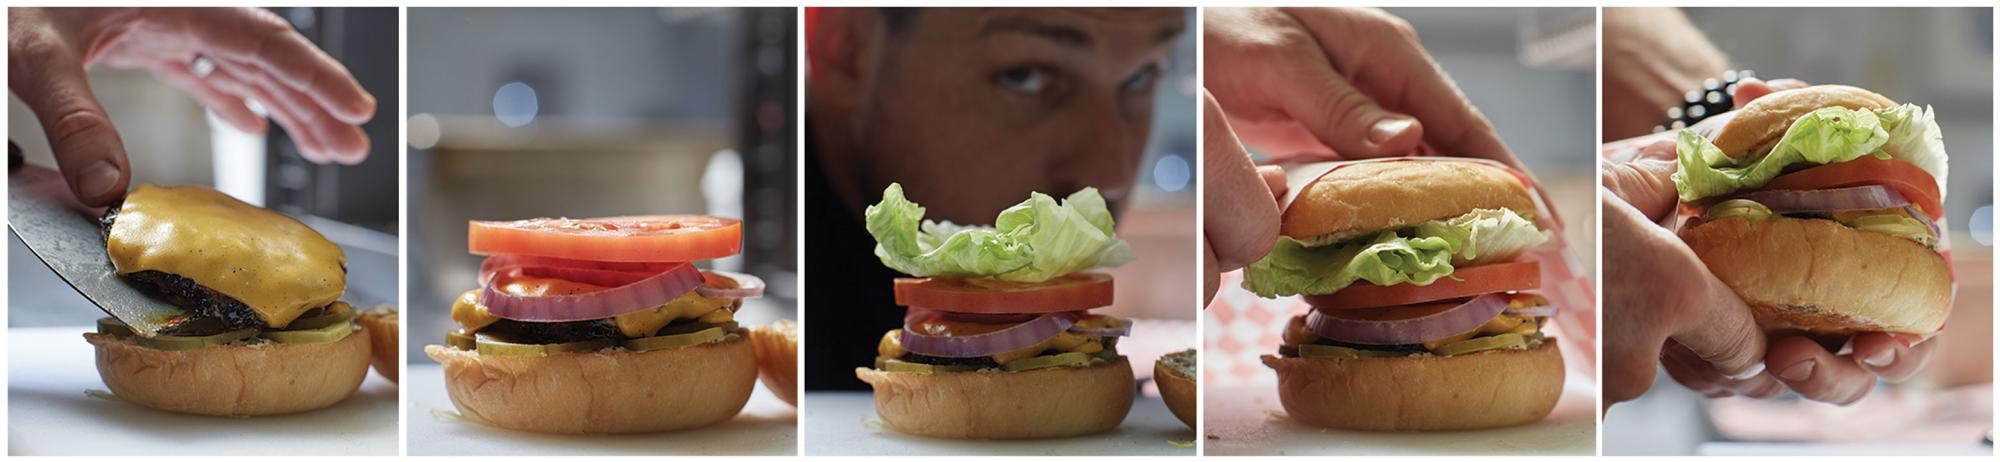 The perfect burger requires perfect balance, in Ryan's view, a perfect ratio of ingredients and seasoning